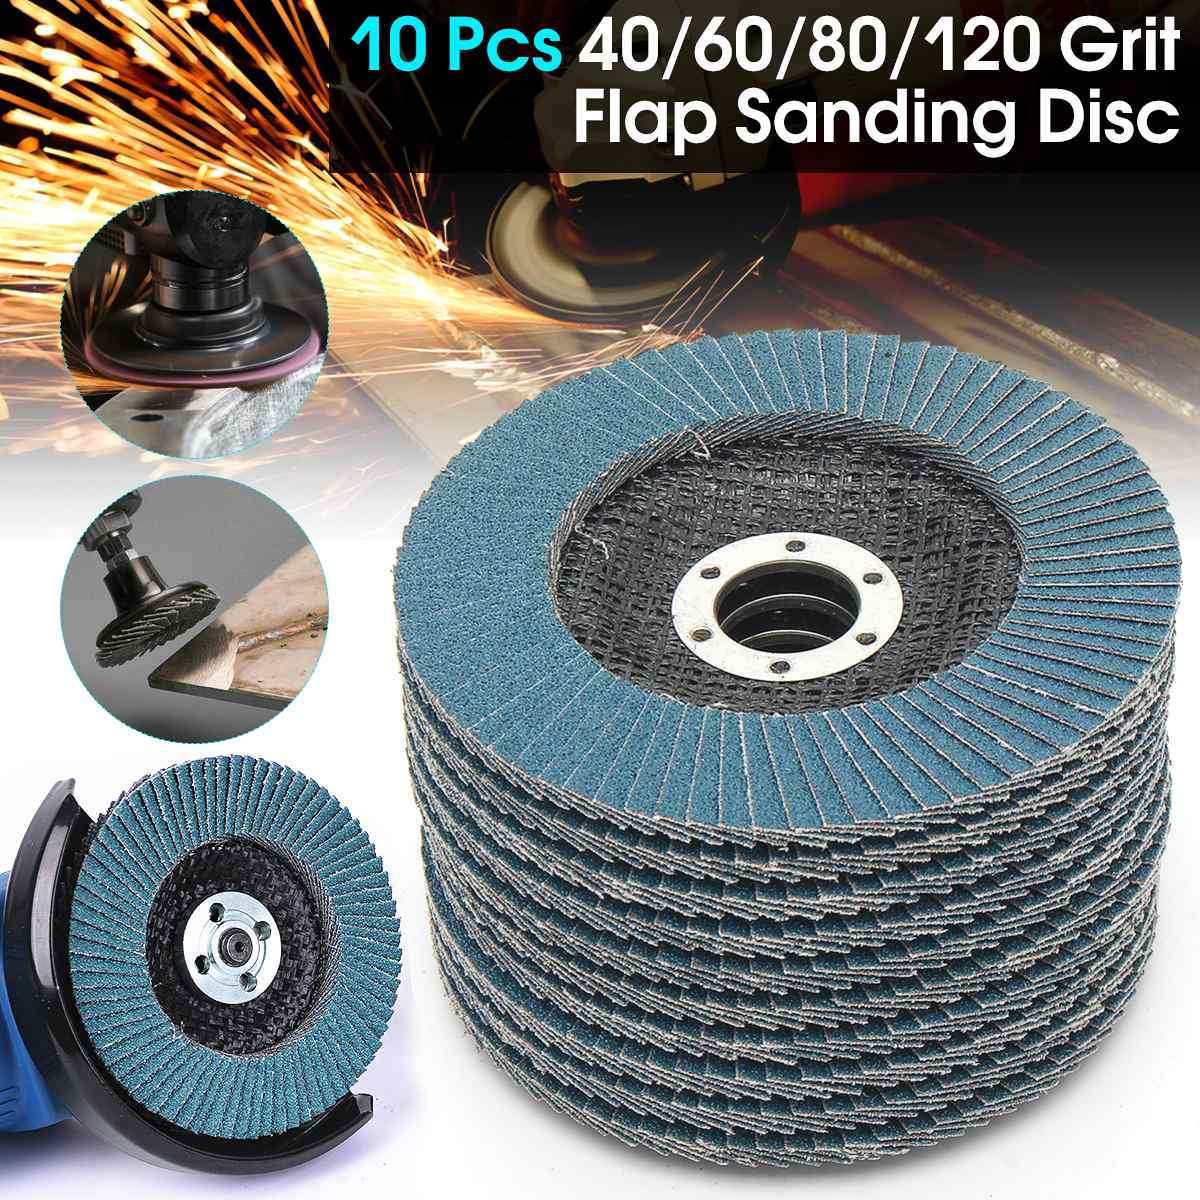 10pcs 40/60/80/120 Grit Grinding Wheels Flap Discs 5